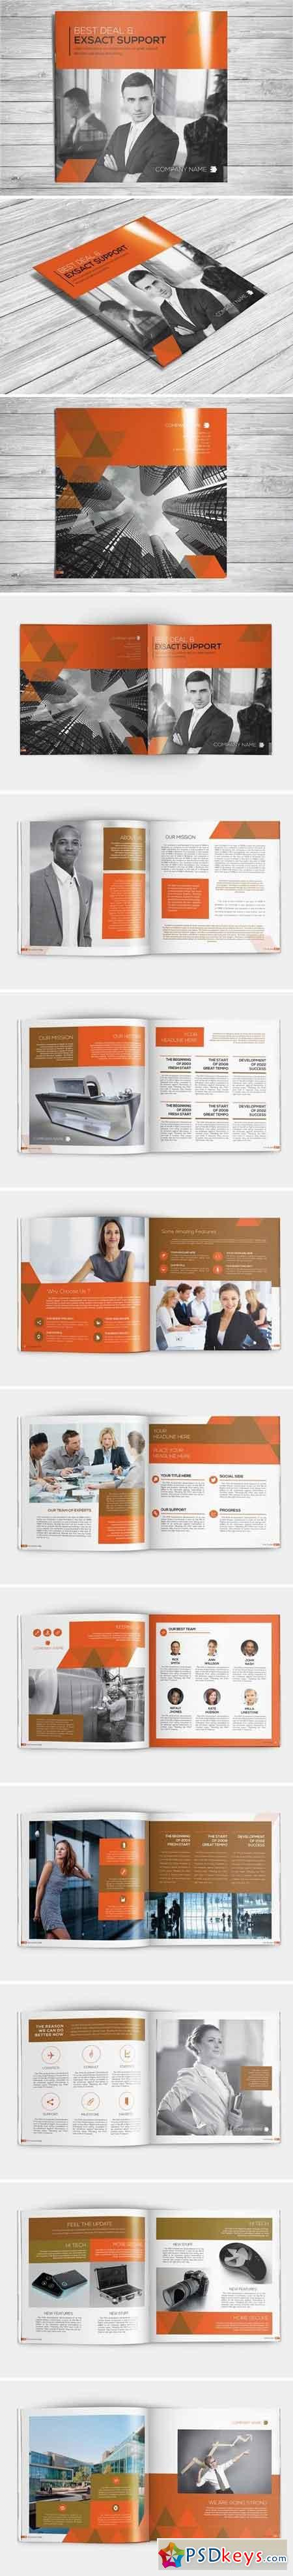 Multipurpose Square Brochure 2109137